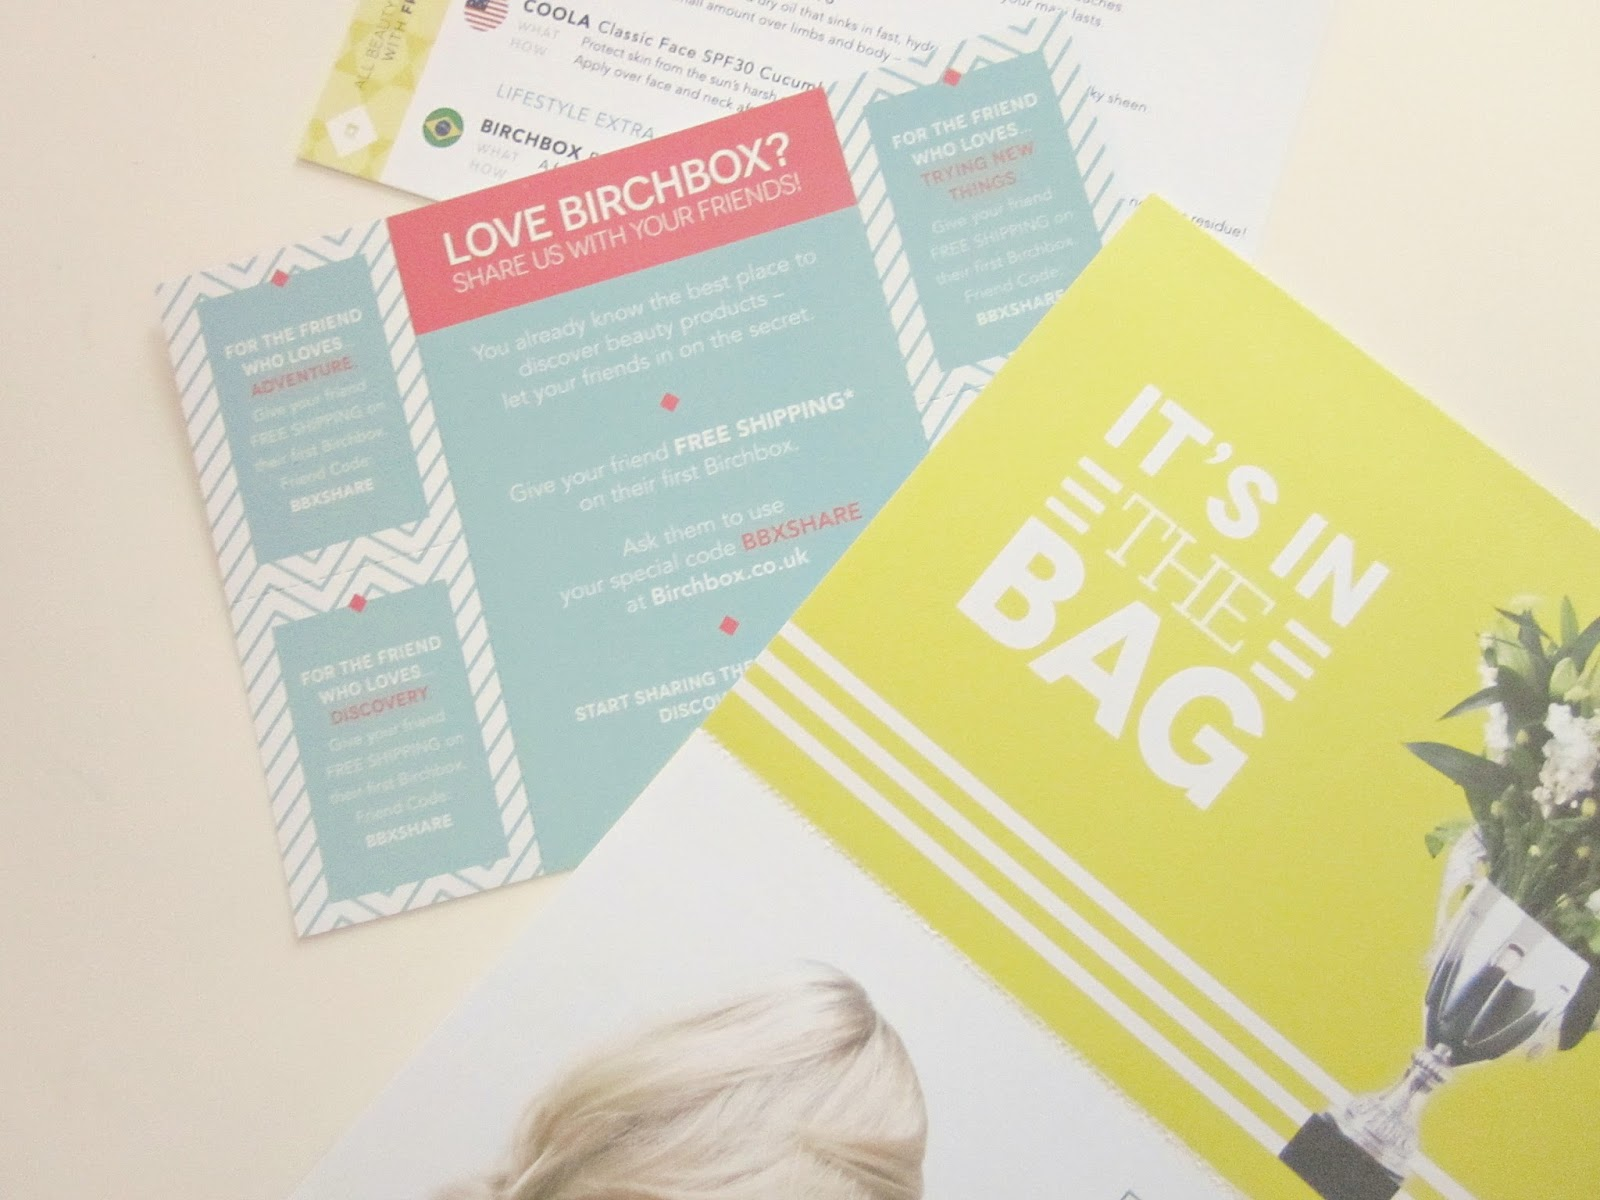 June Birchbox cards